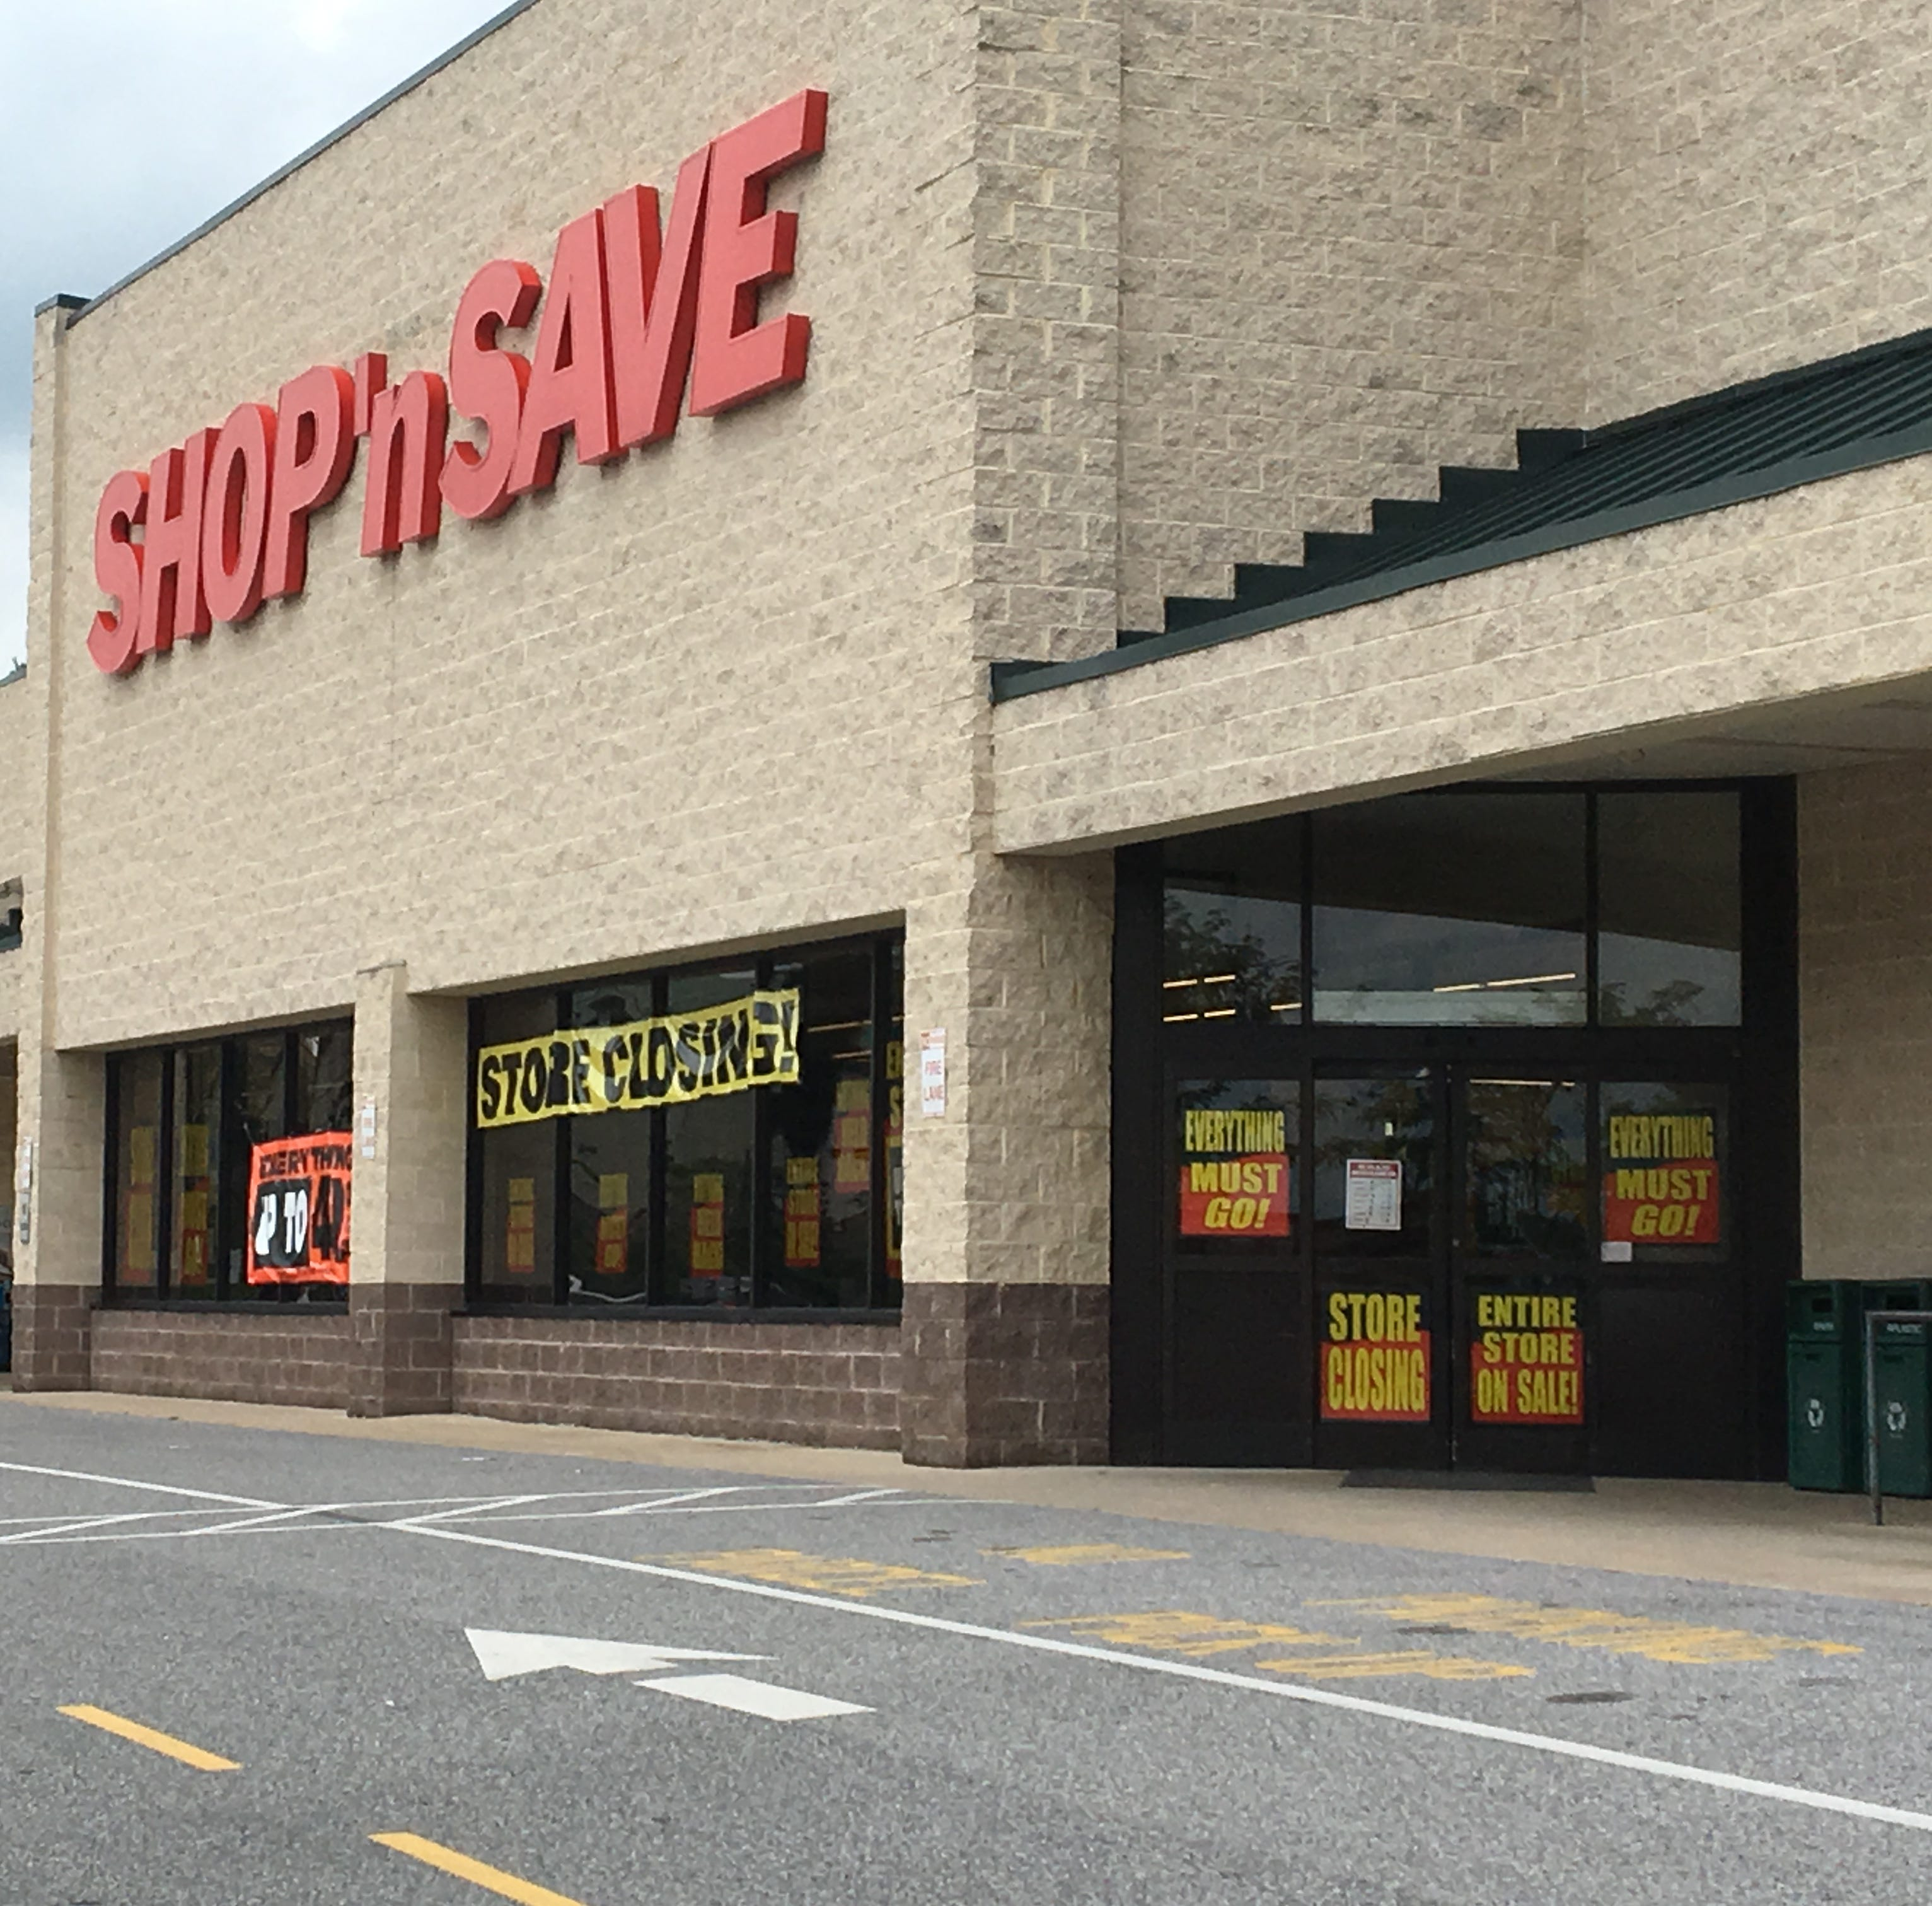 Supervalu Inc. is closing 13 of its 21 Shop 'N Save grocery stores in the East region by Sept. 8 including this store at 875 Lincoln Way West, Chambersburg.